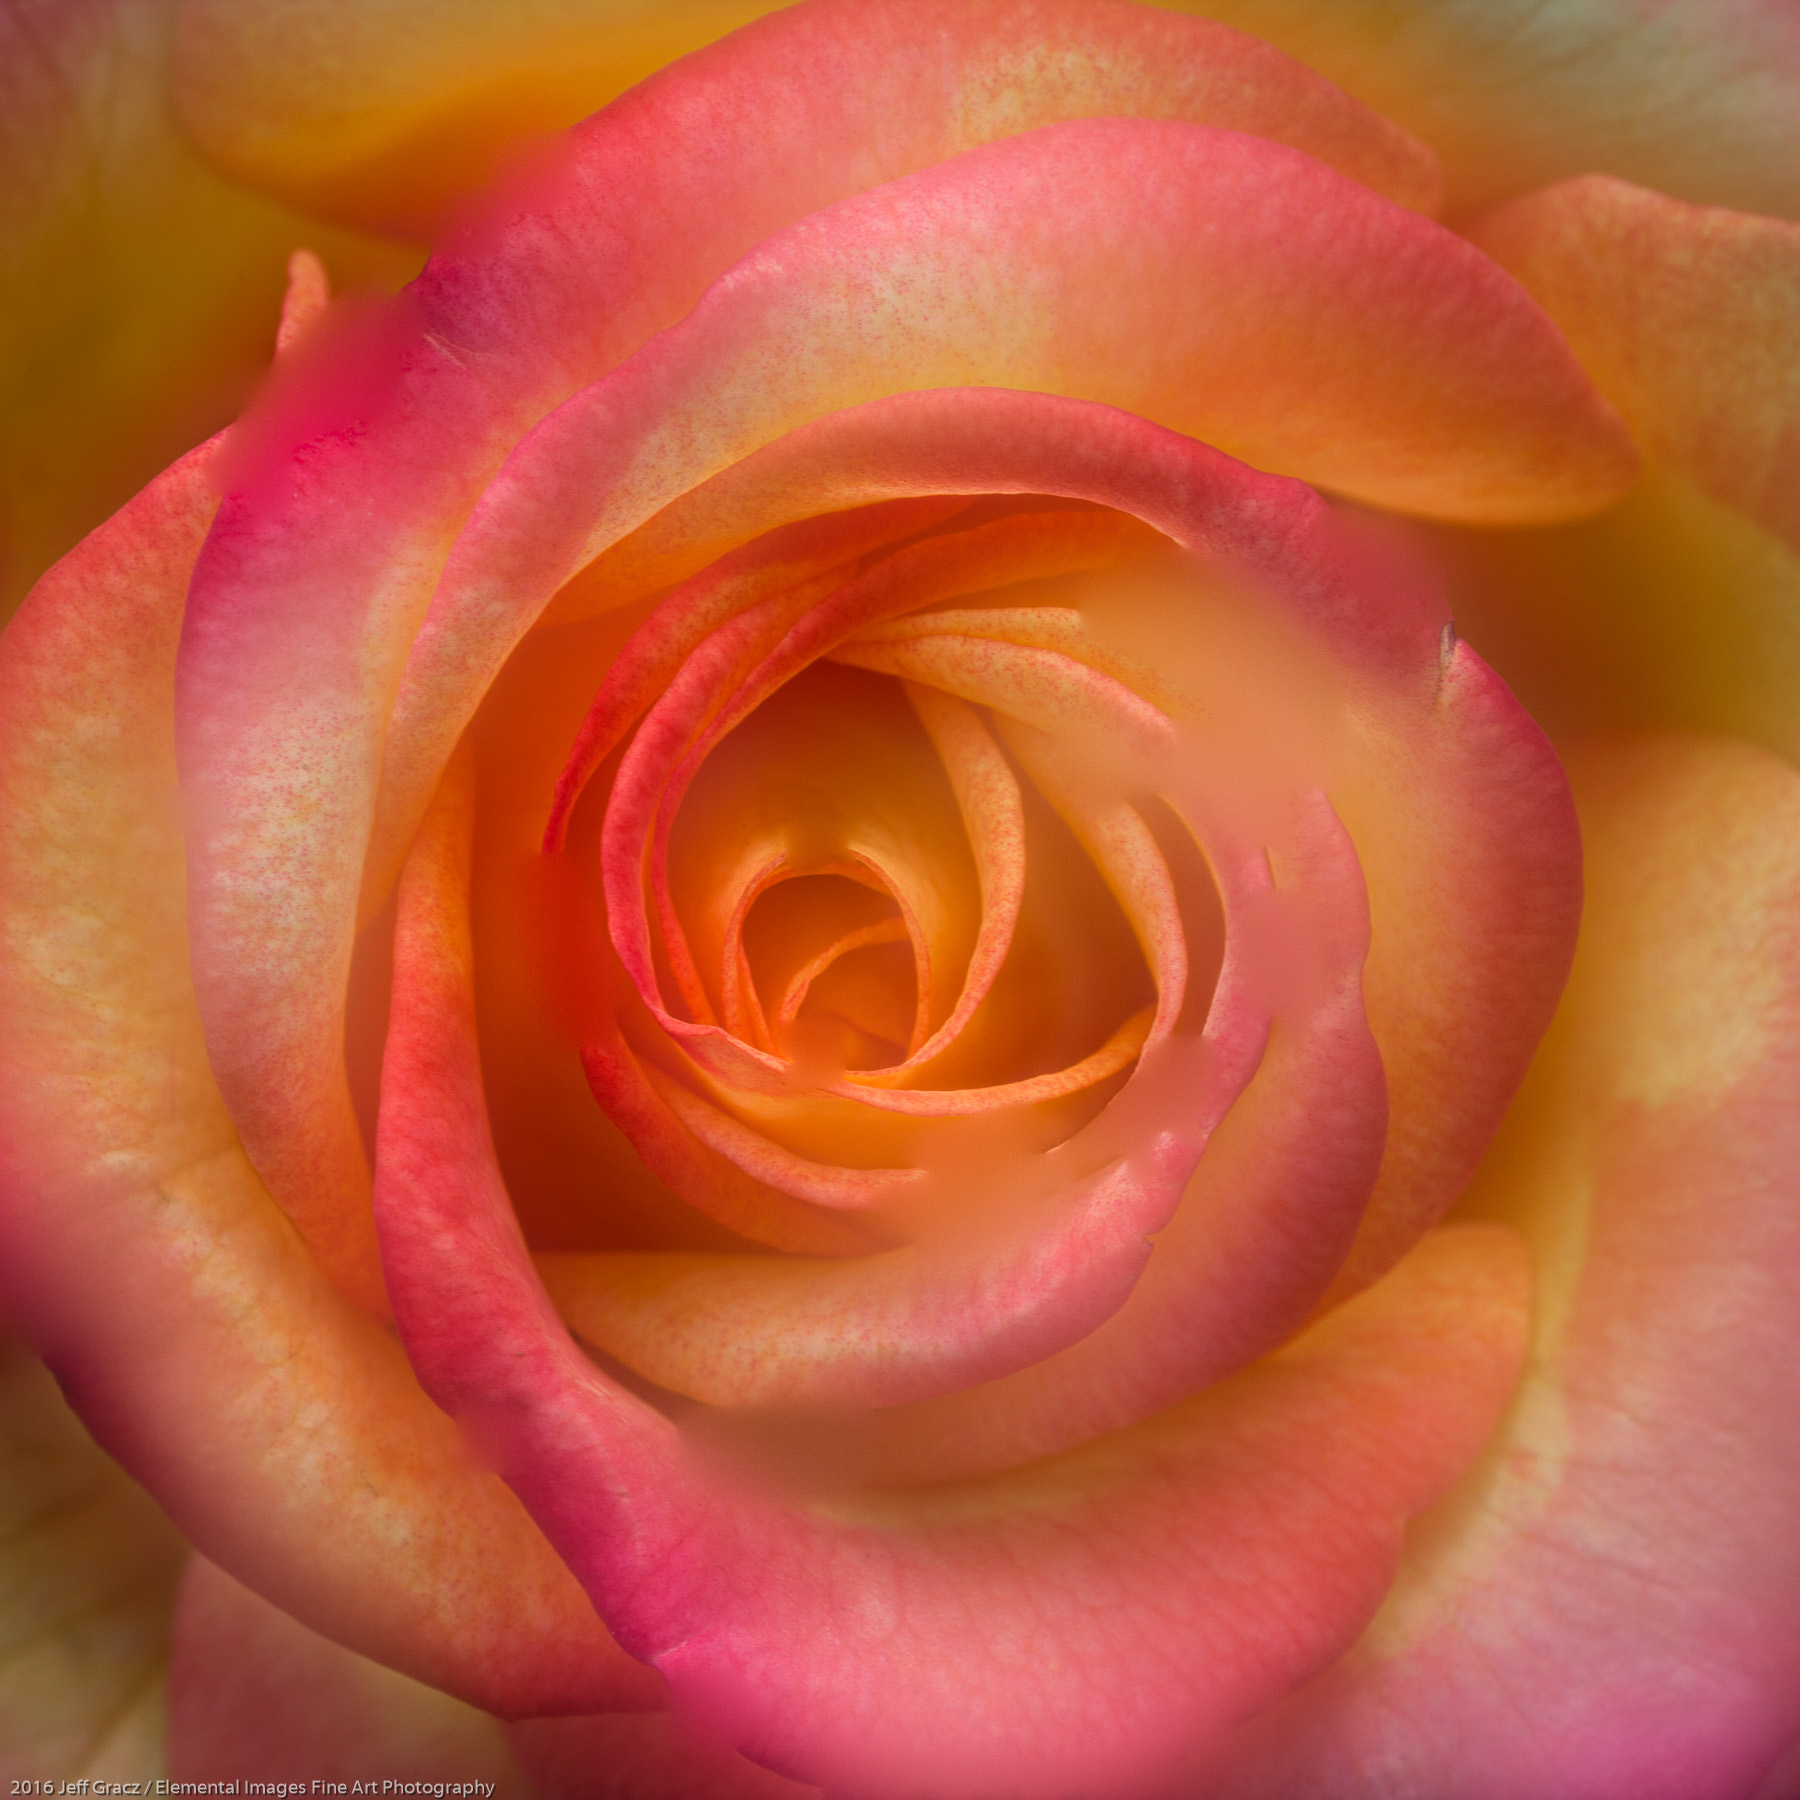 Roses #75   Portland   OR   USA - © 2016 Jeff Gracz / Elemental Images Fine Art Photography - All Rights Reserved Worldwide